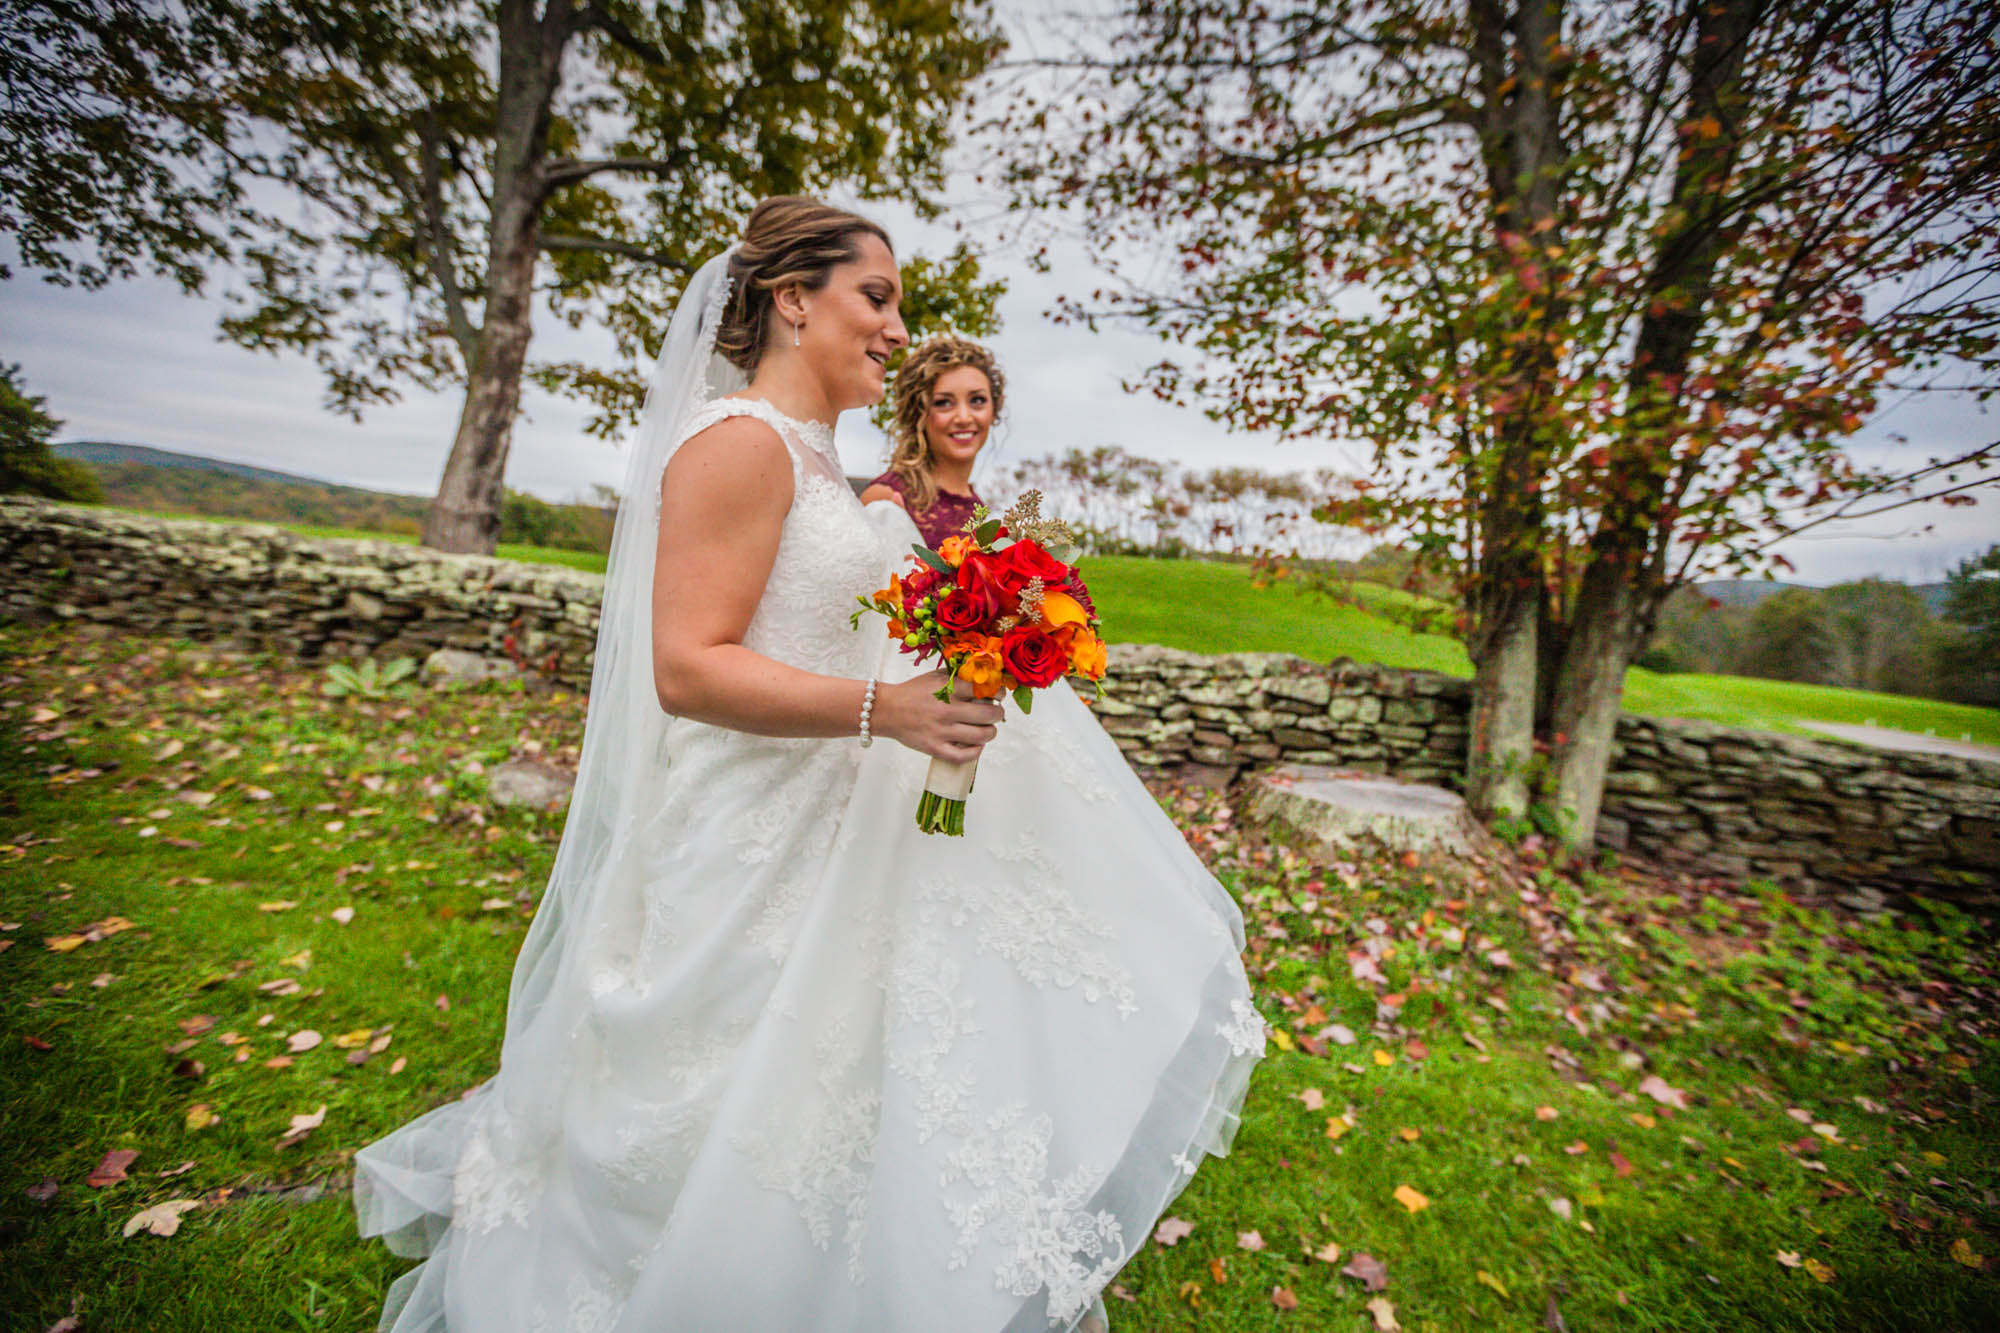 scranton_wedding_photographer_lettieri_pa (11 of 34).jpg